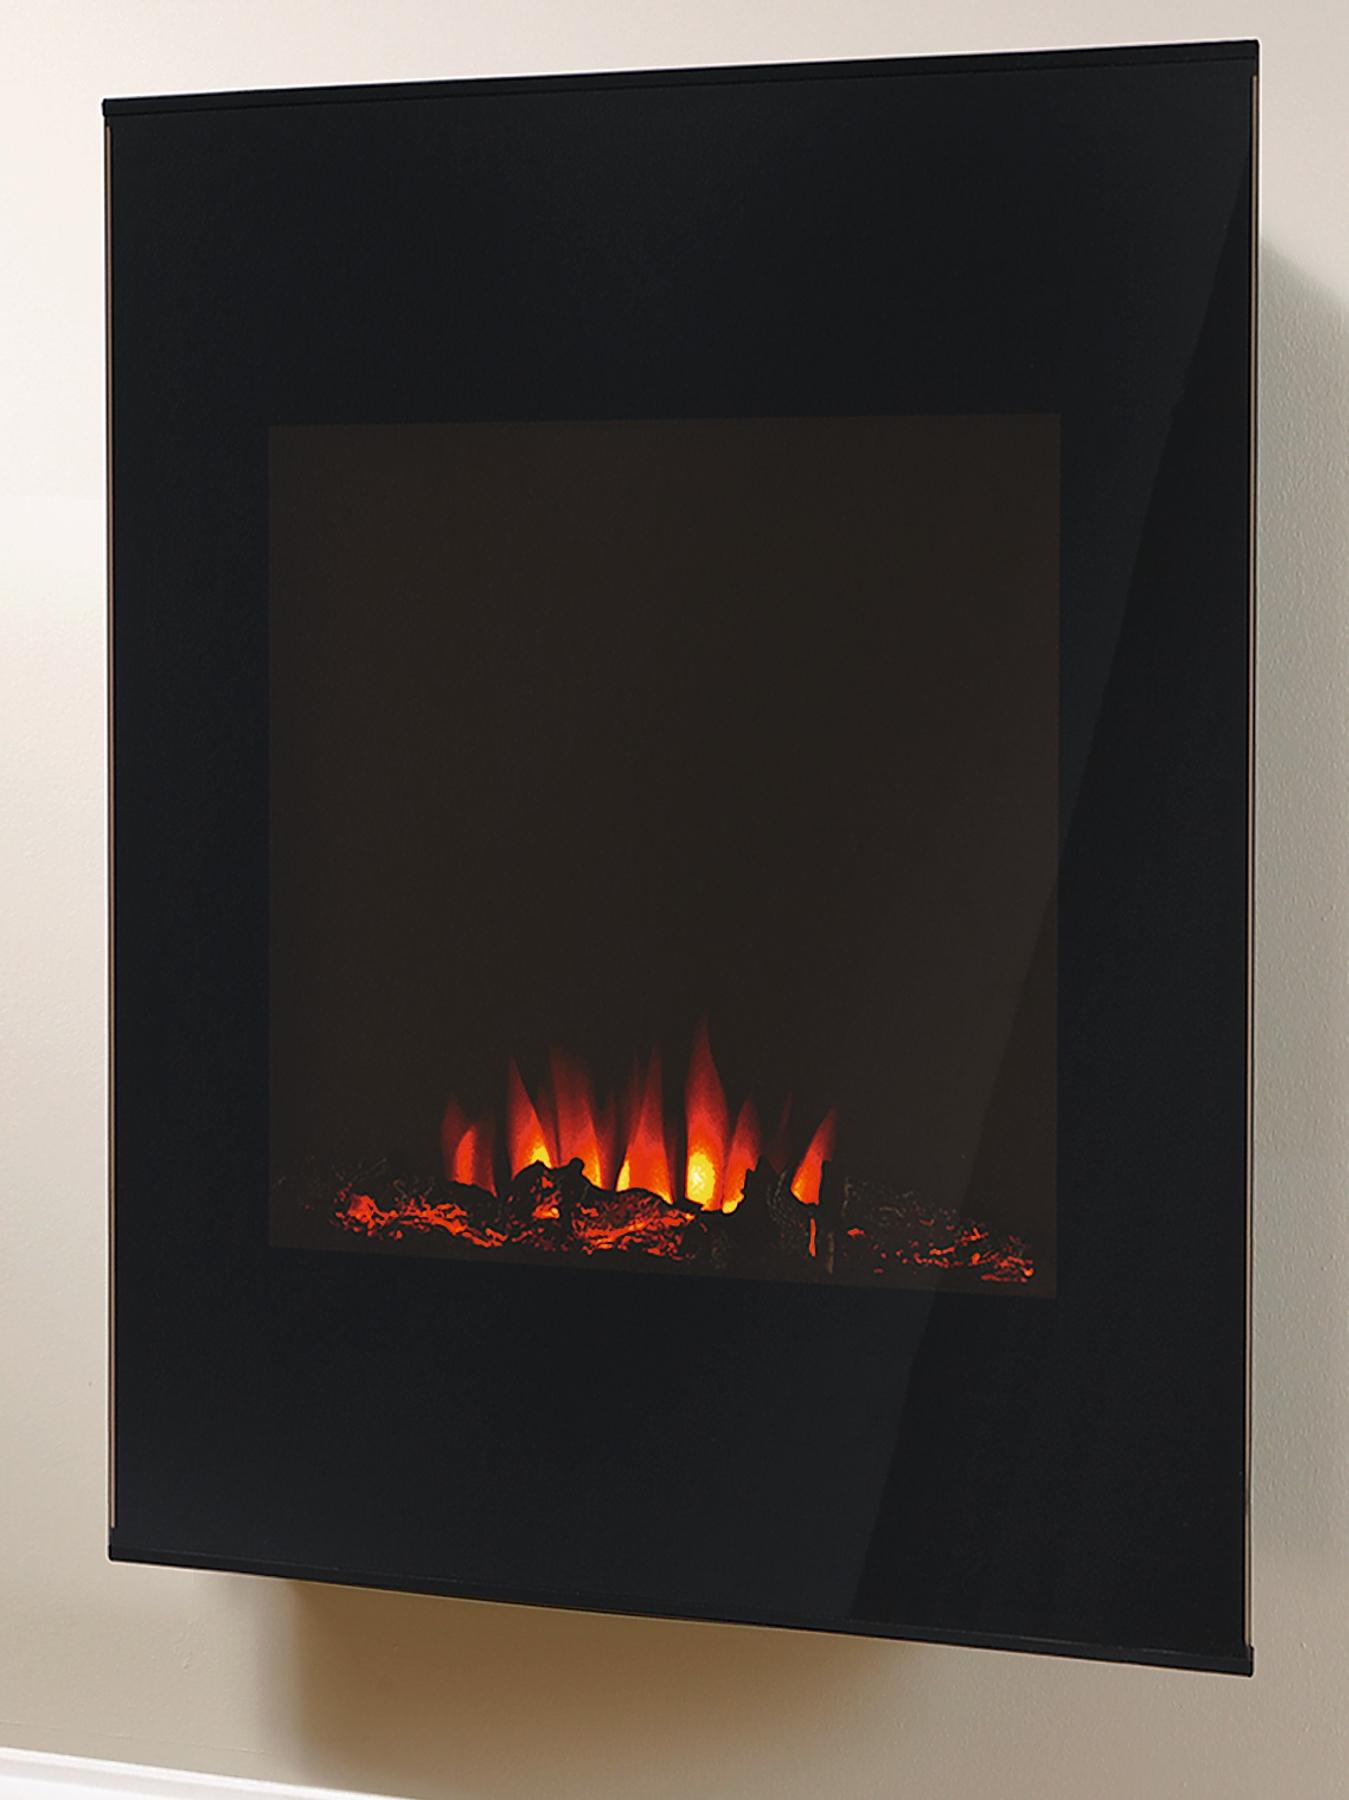 SH2050 Wall Mounted Electric Fire